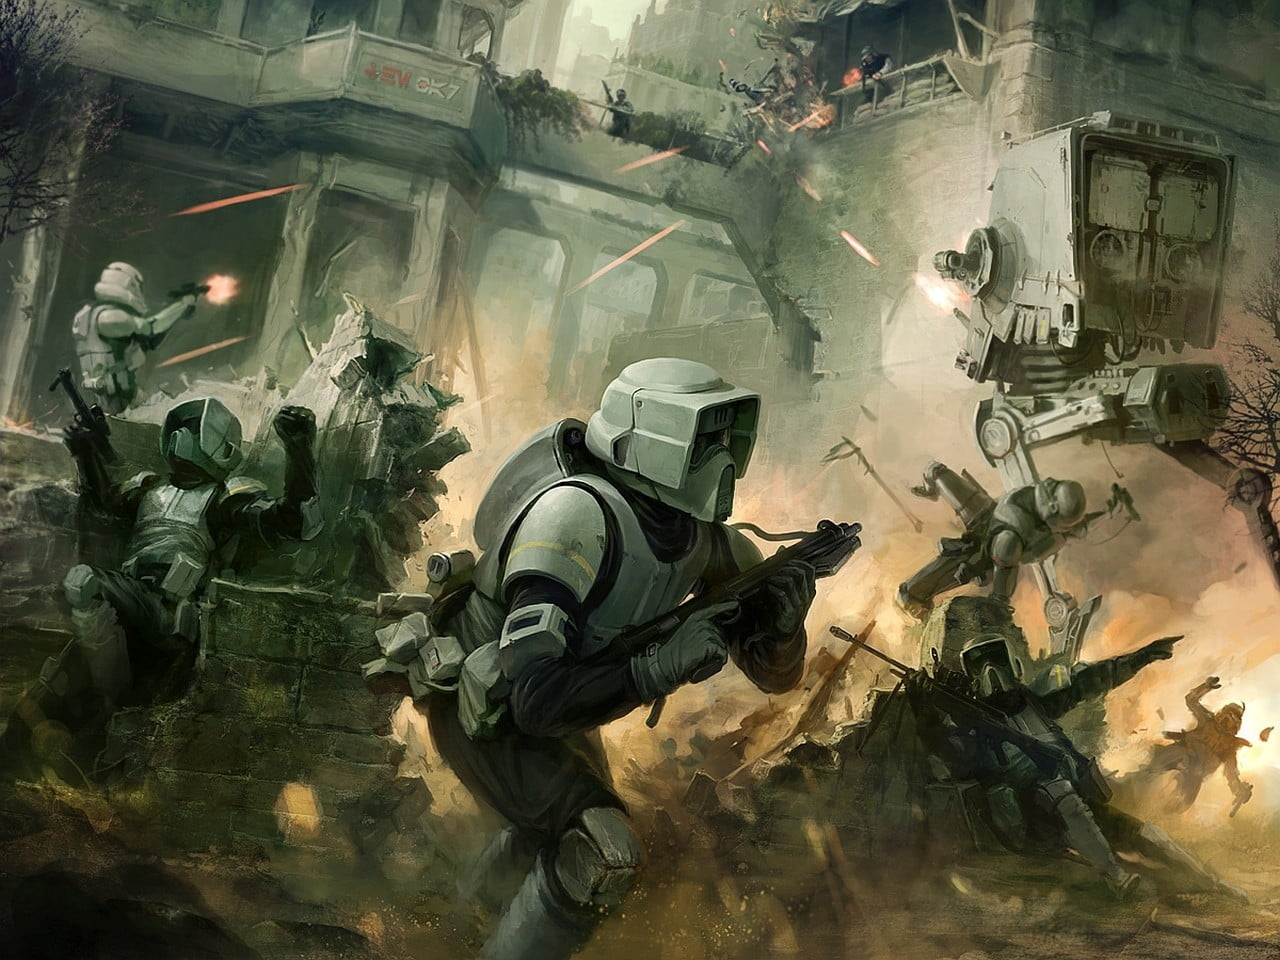 Galactic Empire Imperium Of Man 1280x960 Wallpaper Teahub Io